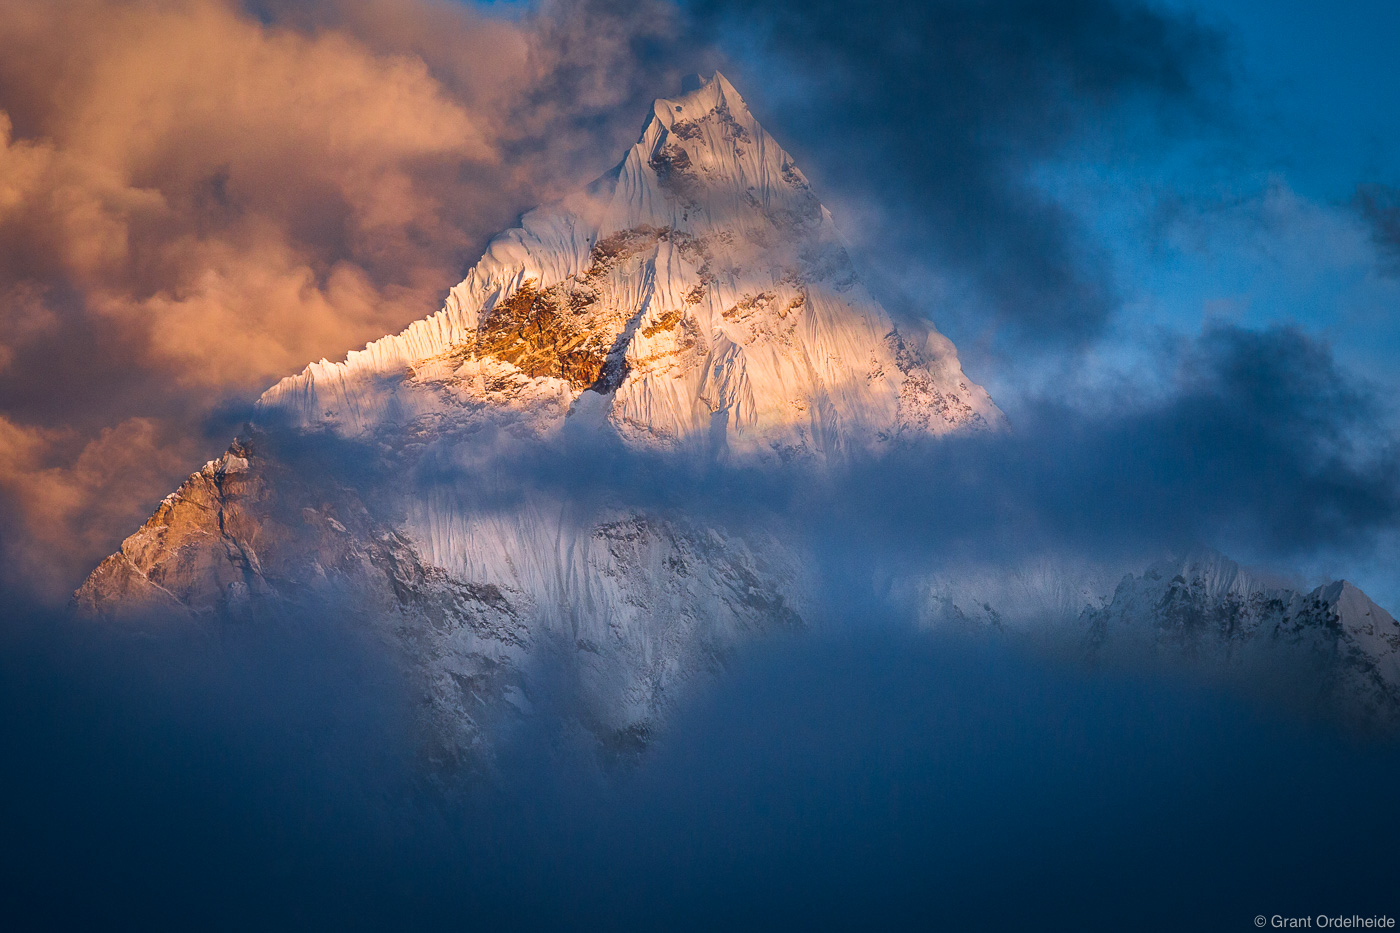 Ama Dablam peaks through the clouds in the Everest Region of Nepal's Himalaya.